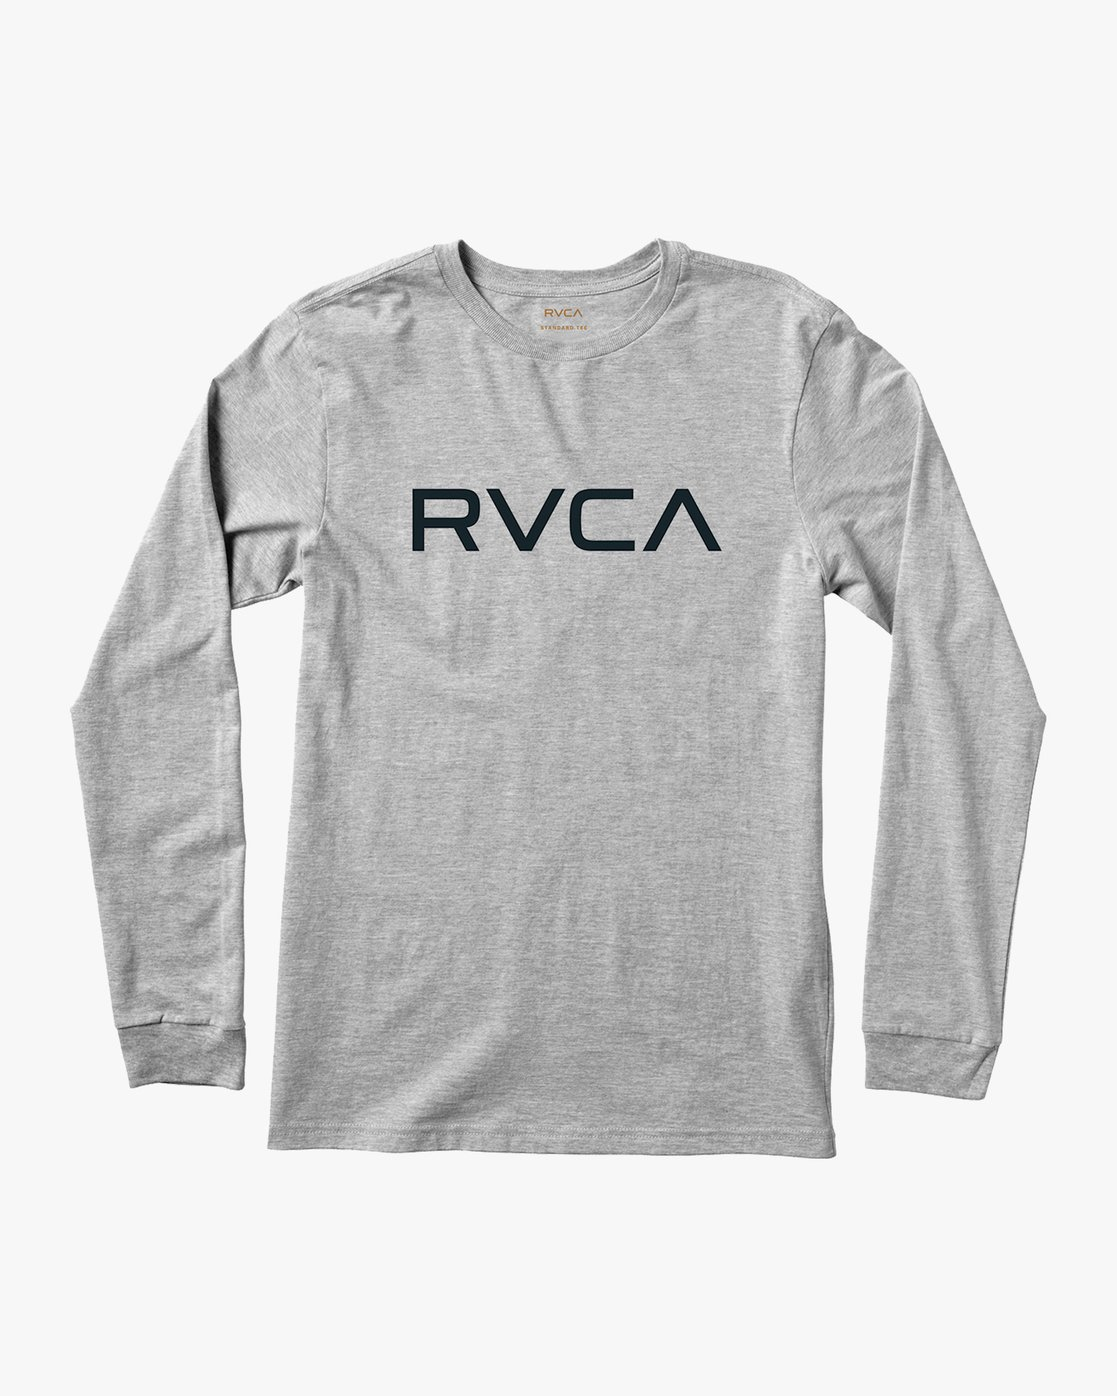 9faf81f61 0 Big RVCA Long Sleeve T-Shirt Grey M451TRBI RVCA